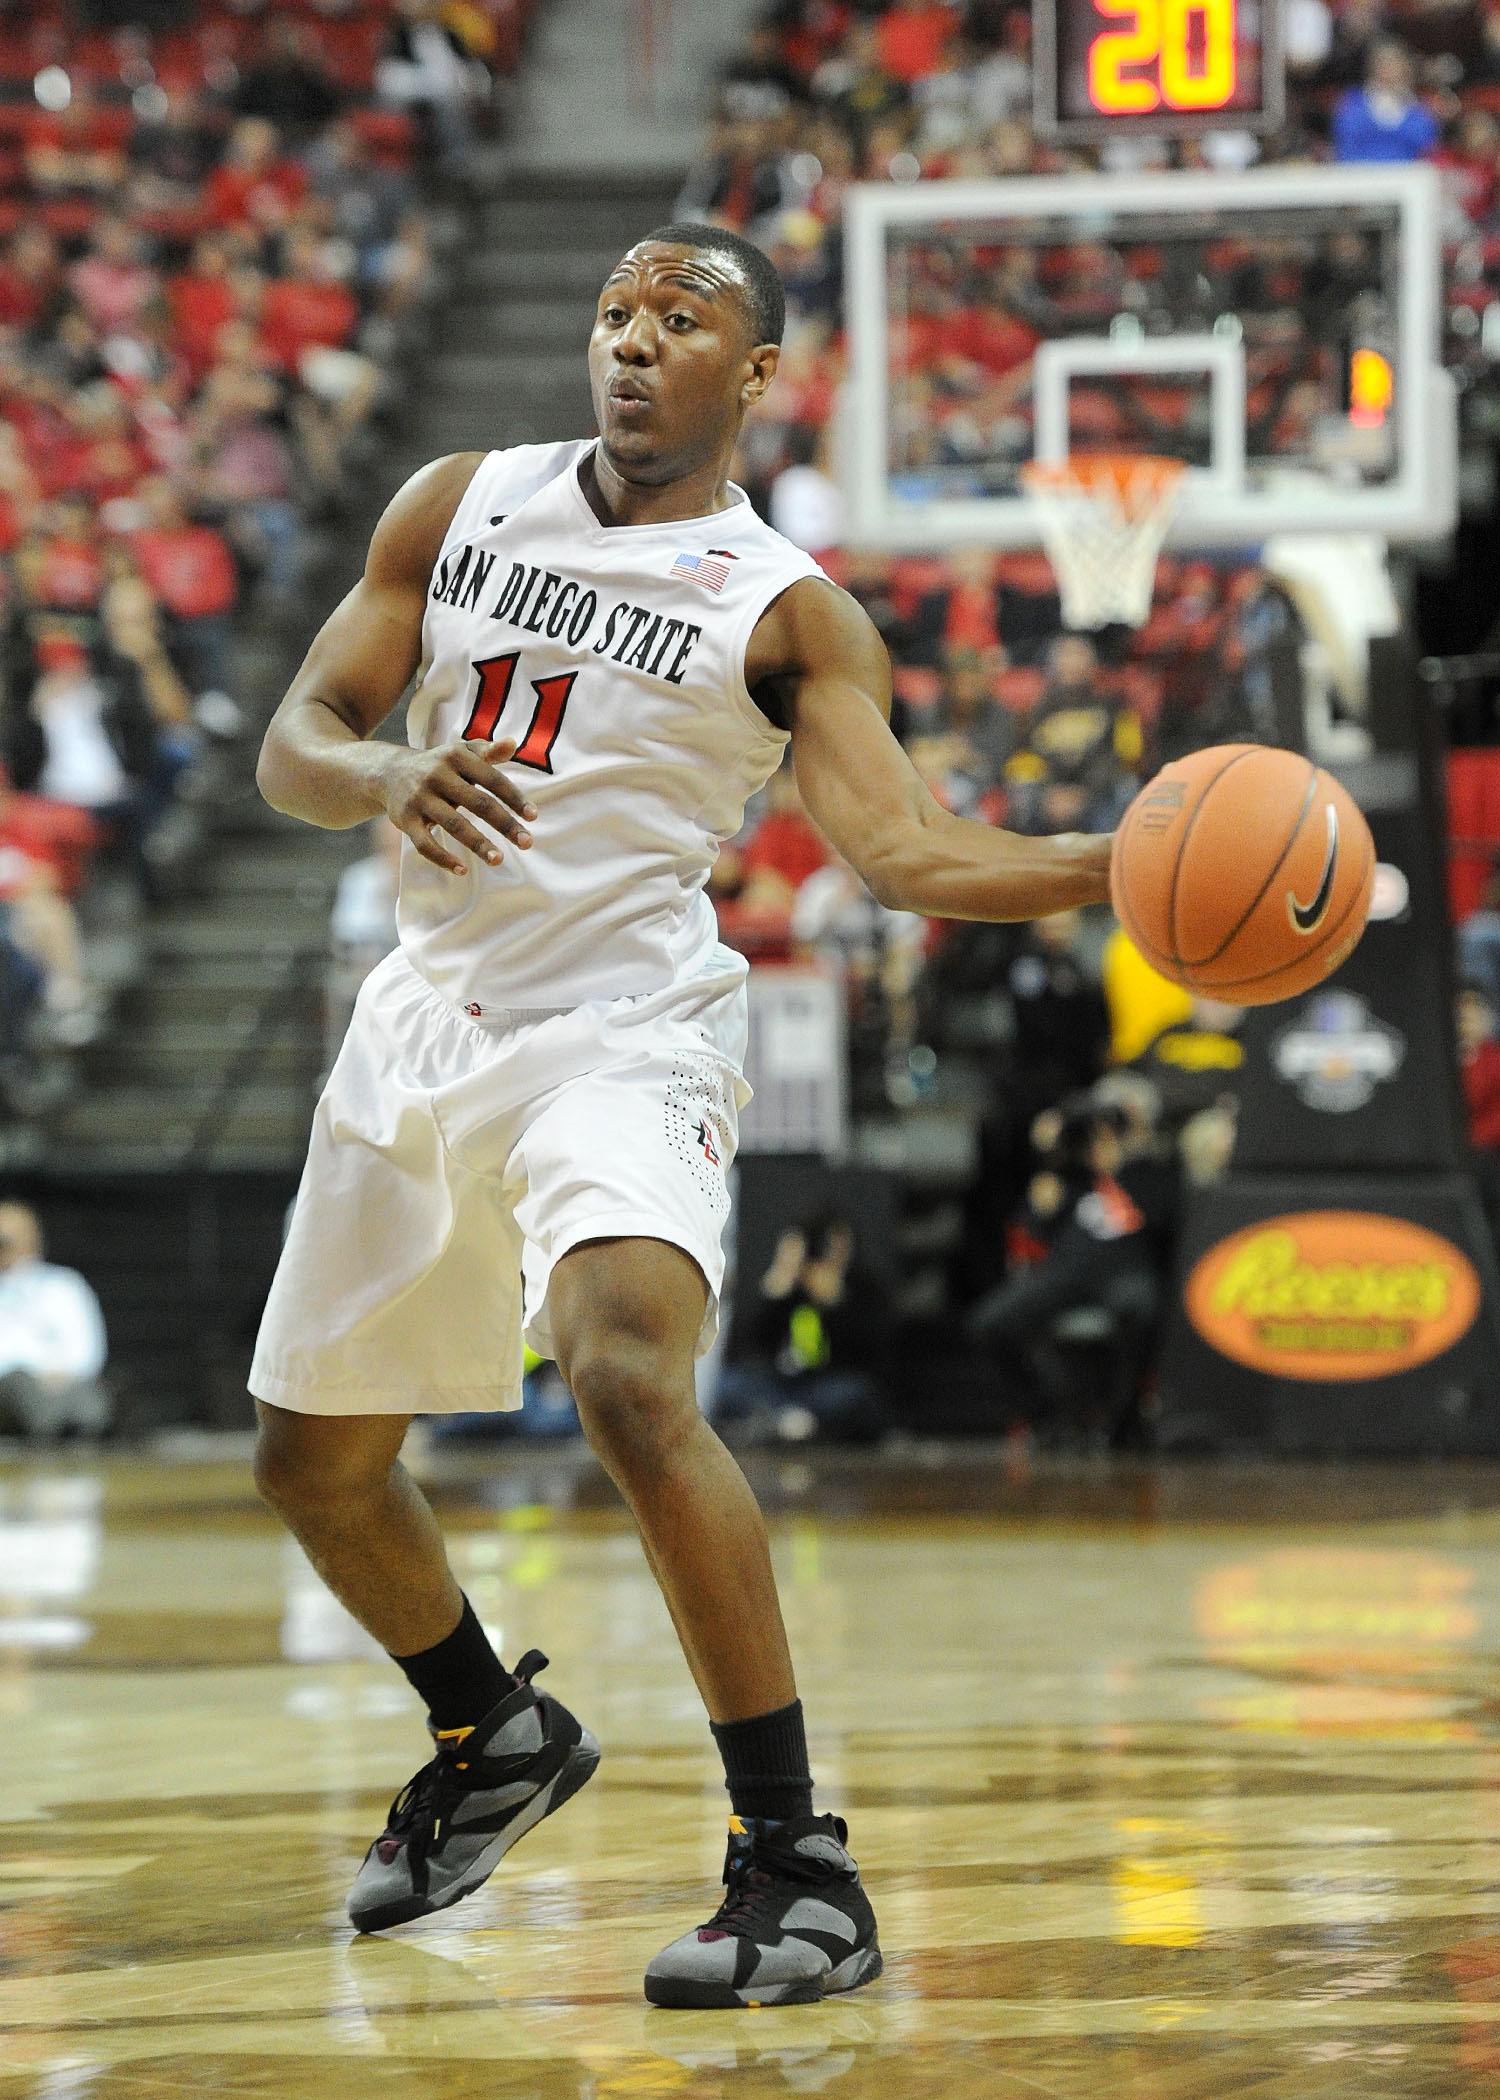 SDSU will face Brigham Young in the championship round of the EA SPORTS Maui Invitational.